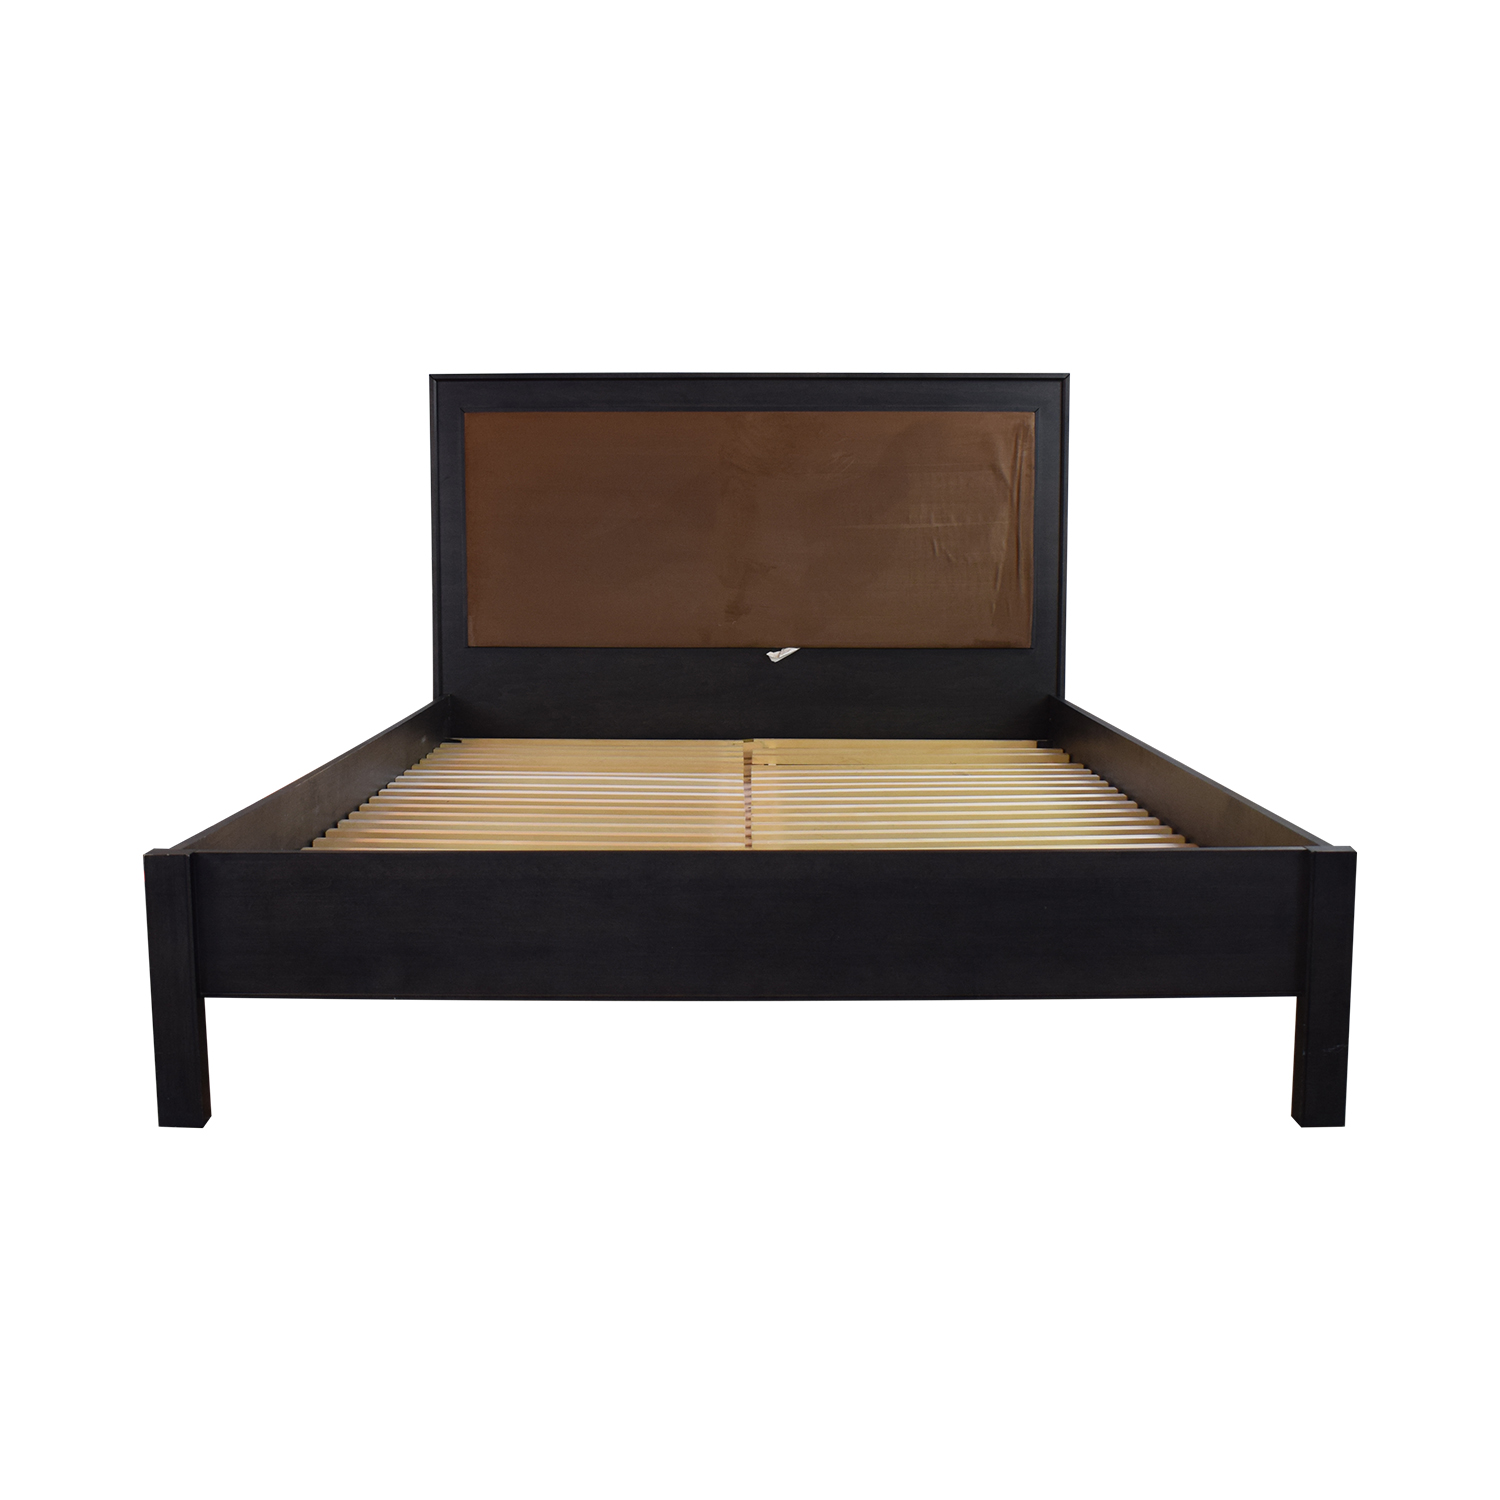 Baronet Baronet Brown Queen Bed Brown, Black